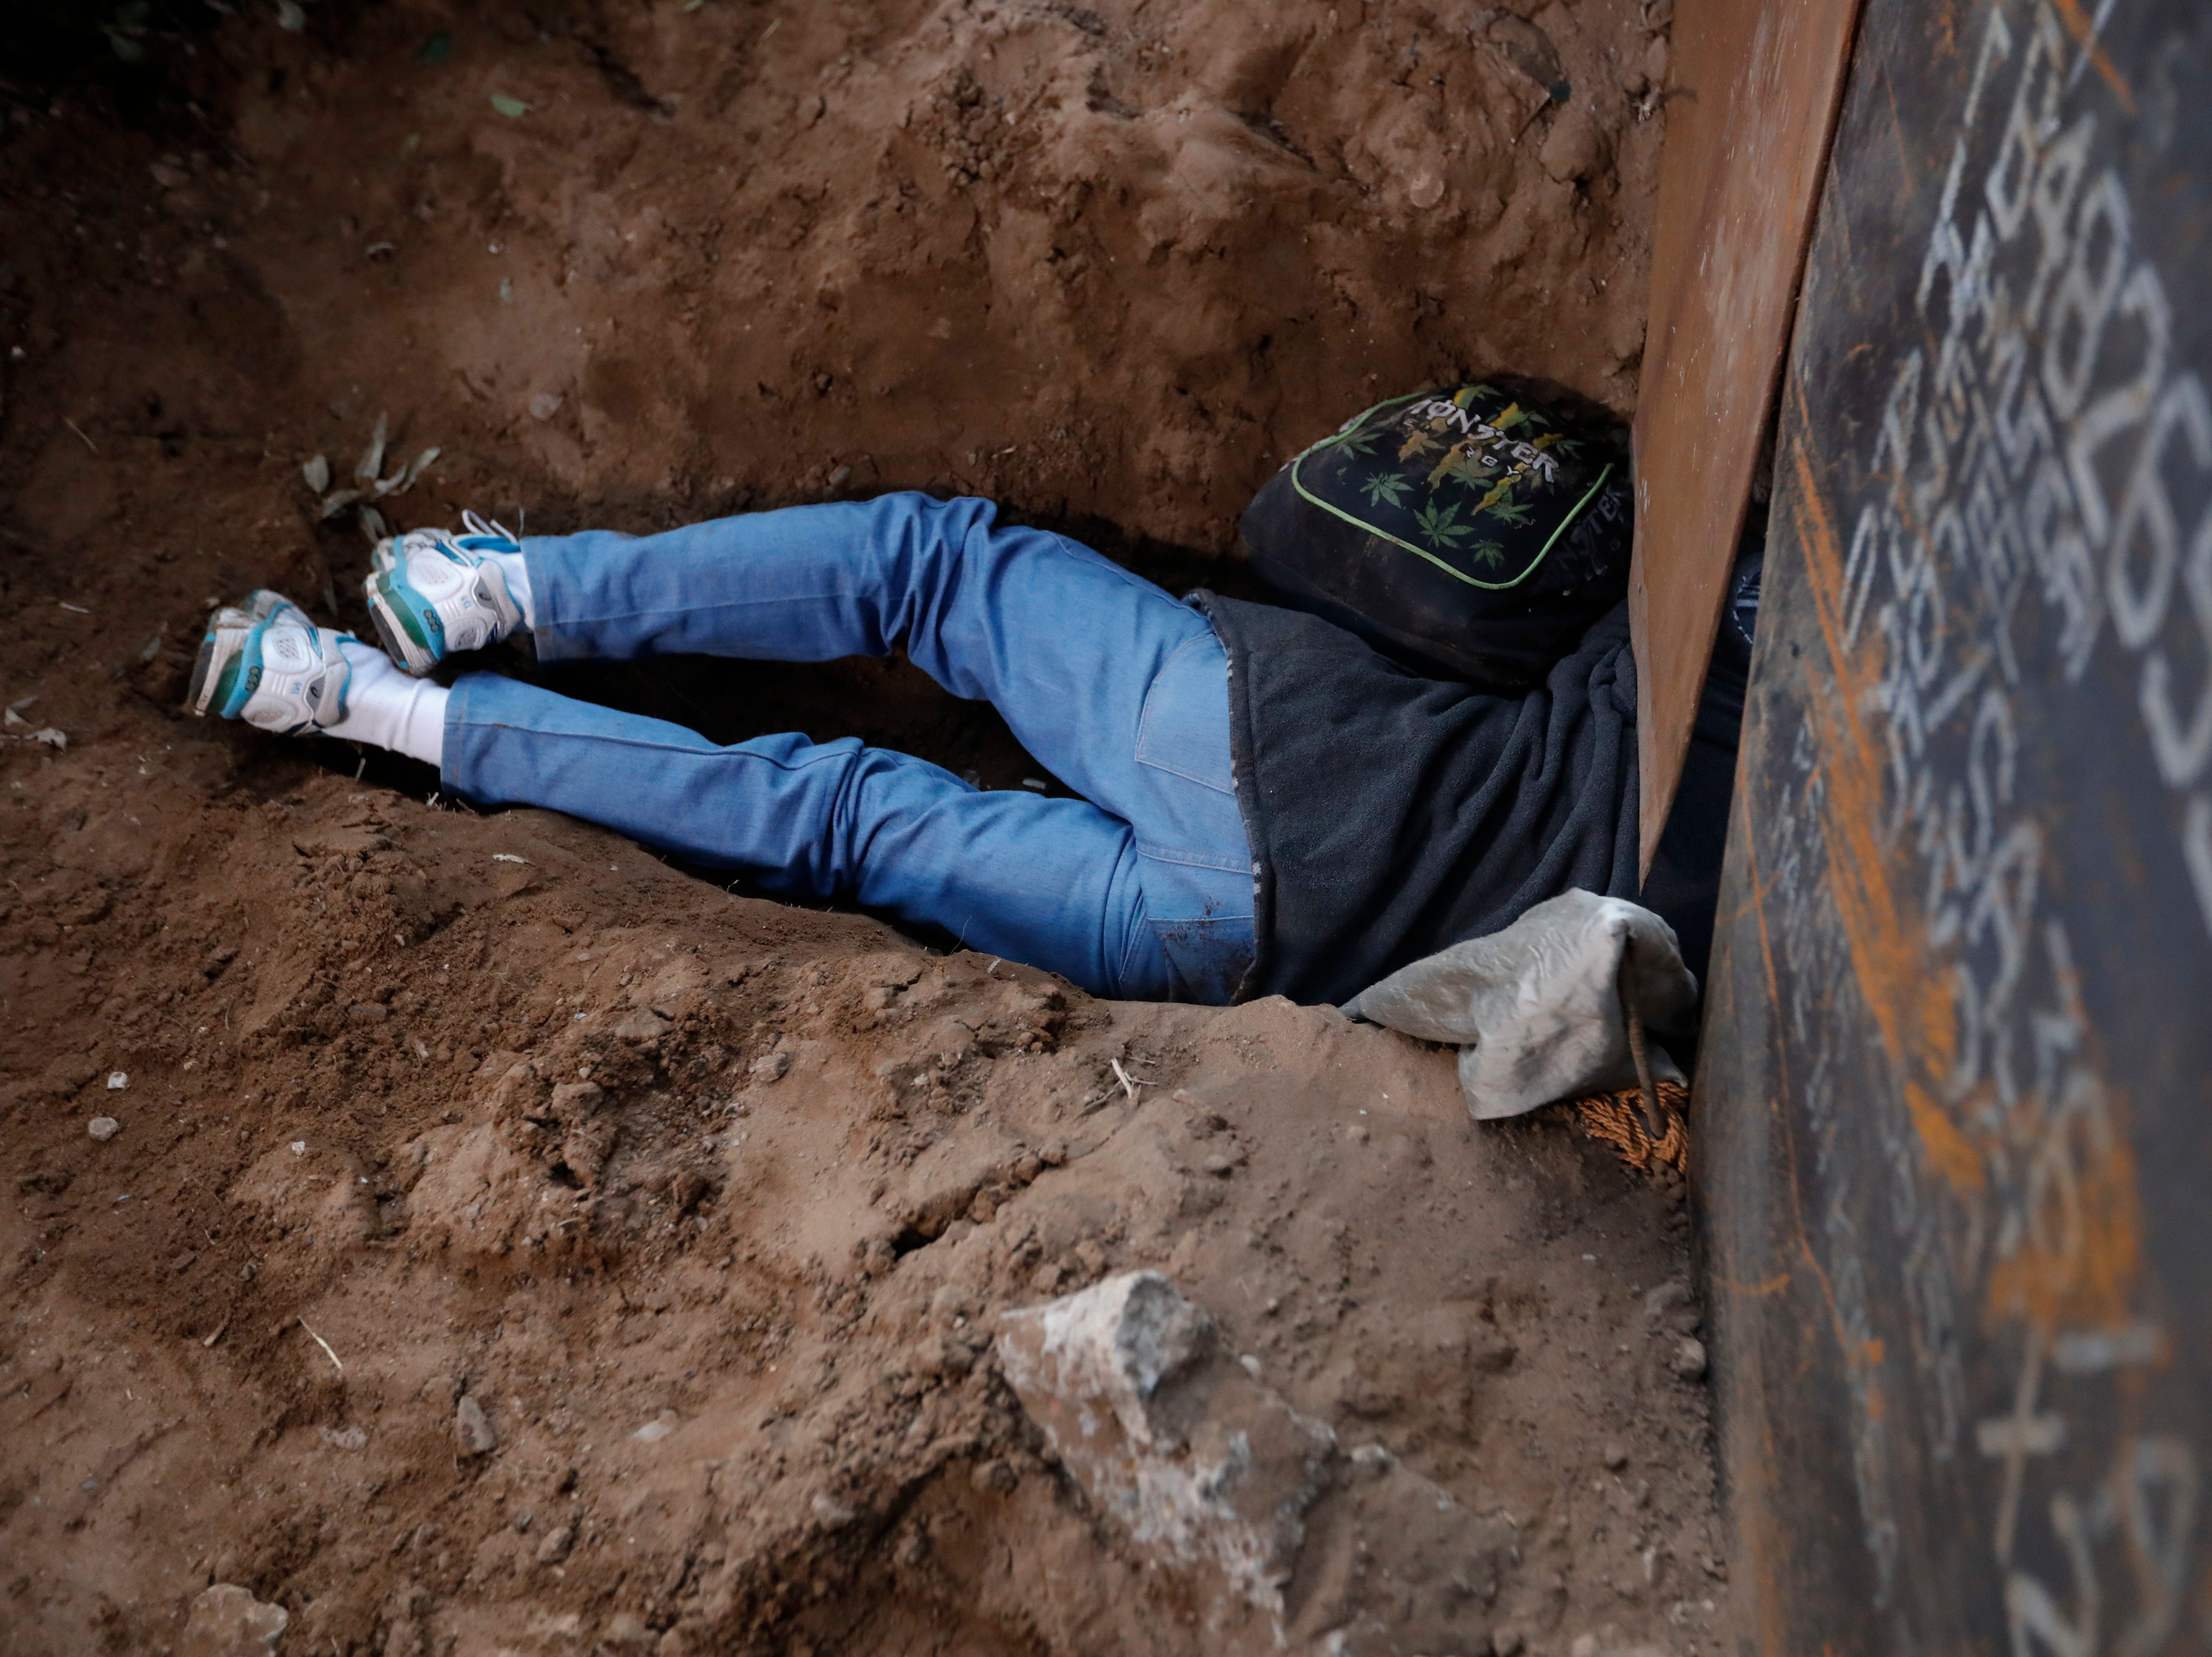 A Honduran migrant crawls through a hole under the U.S. border fence in Playas de Tijuana, Mexico, Tuesday, Dec. 4, 2018. Discouraged by the long wait to apply for asylum through official ports of entry, many Central American migrants from recent caravans are choosing to cross the U.S. border wall and hand themselves in to border patrol agents.